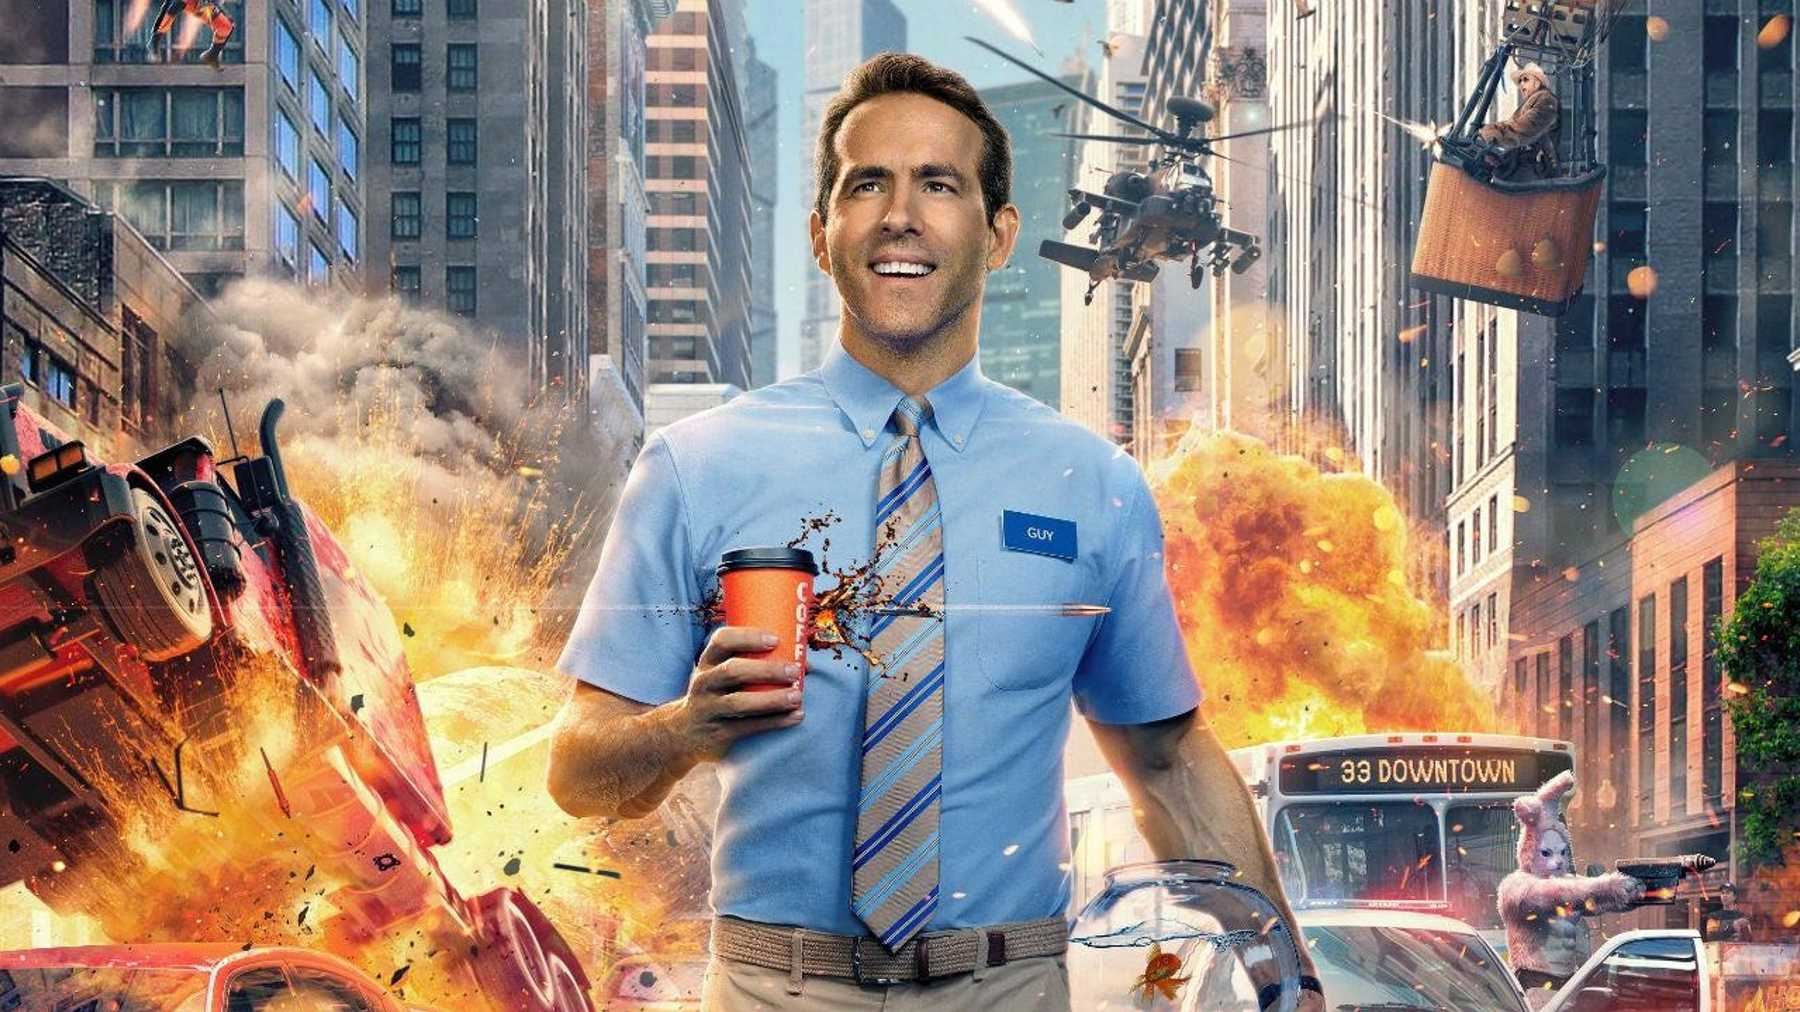 Free Guy: Ryan Reynolds and Jodie Comer will become your favorite couple with the new trailer